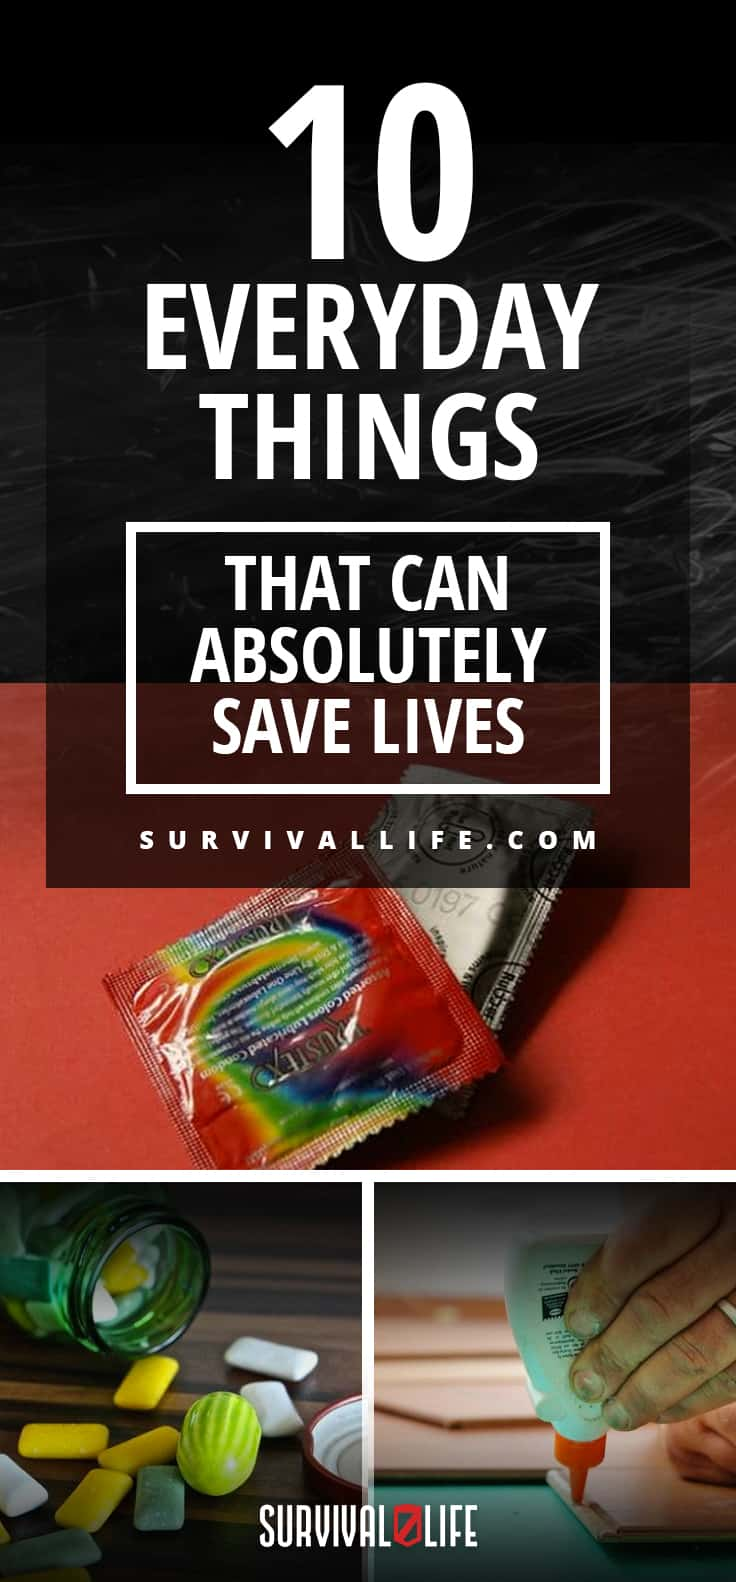 10 Everyday Things That Can Absolutely Save Lives